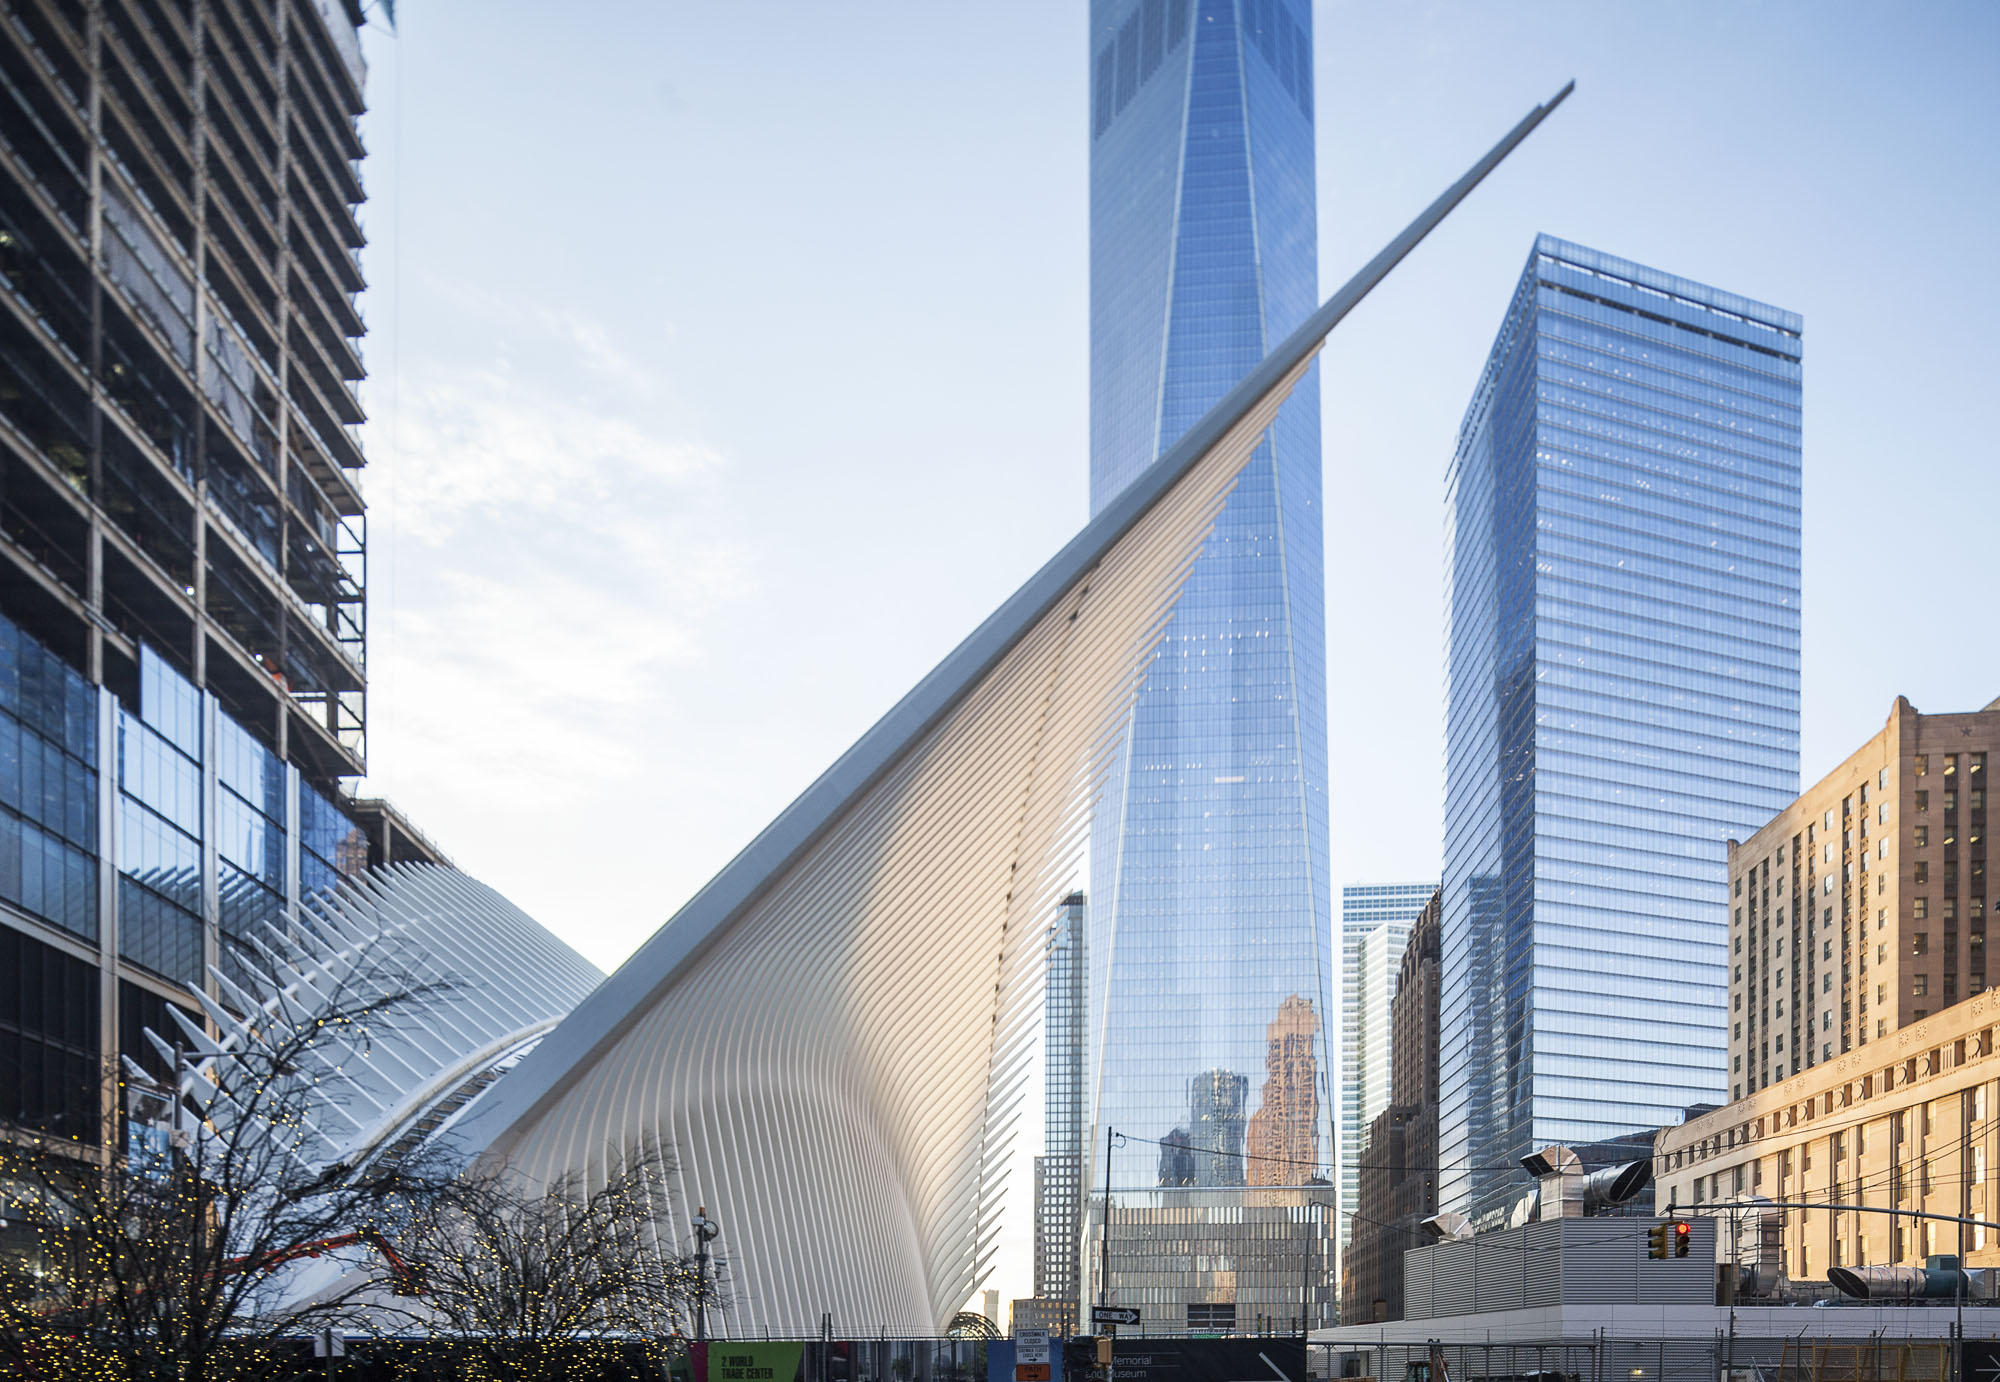 World Trade Center Hub in New York. Photo: Montse Zamorano